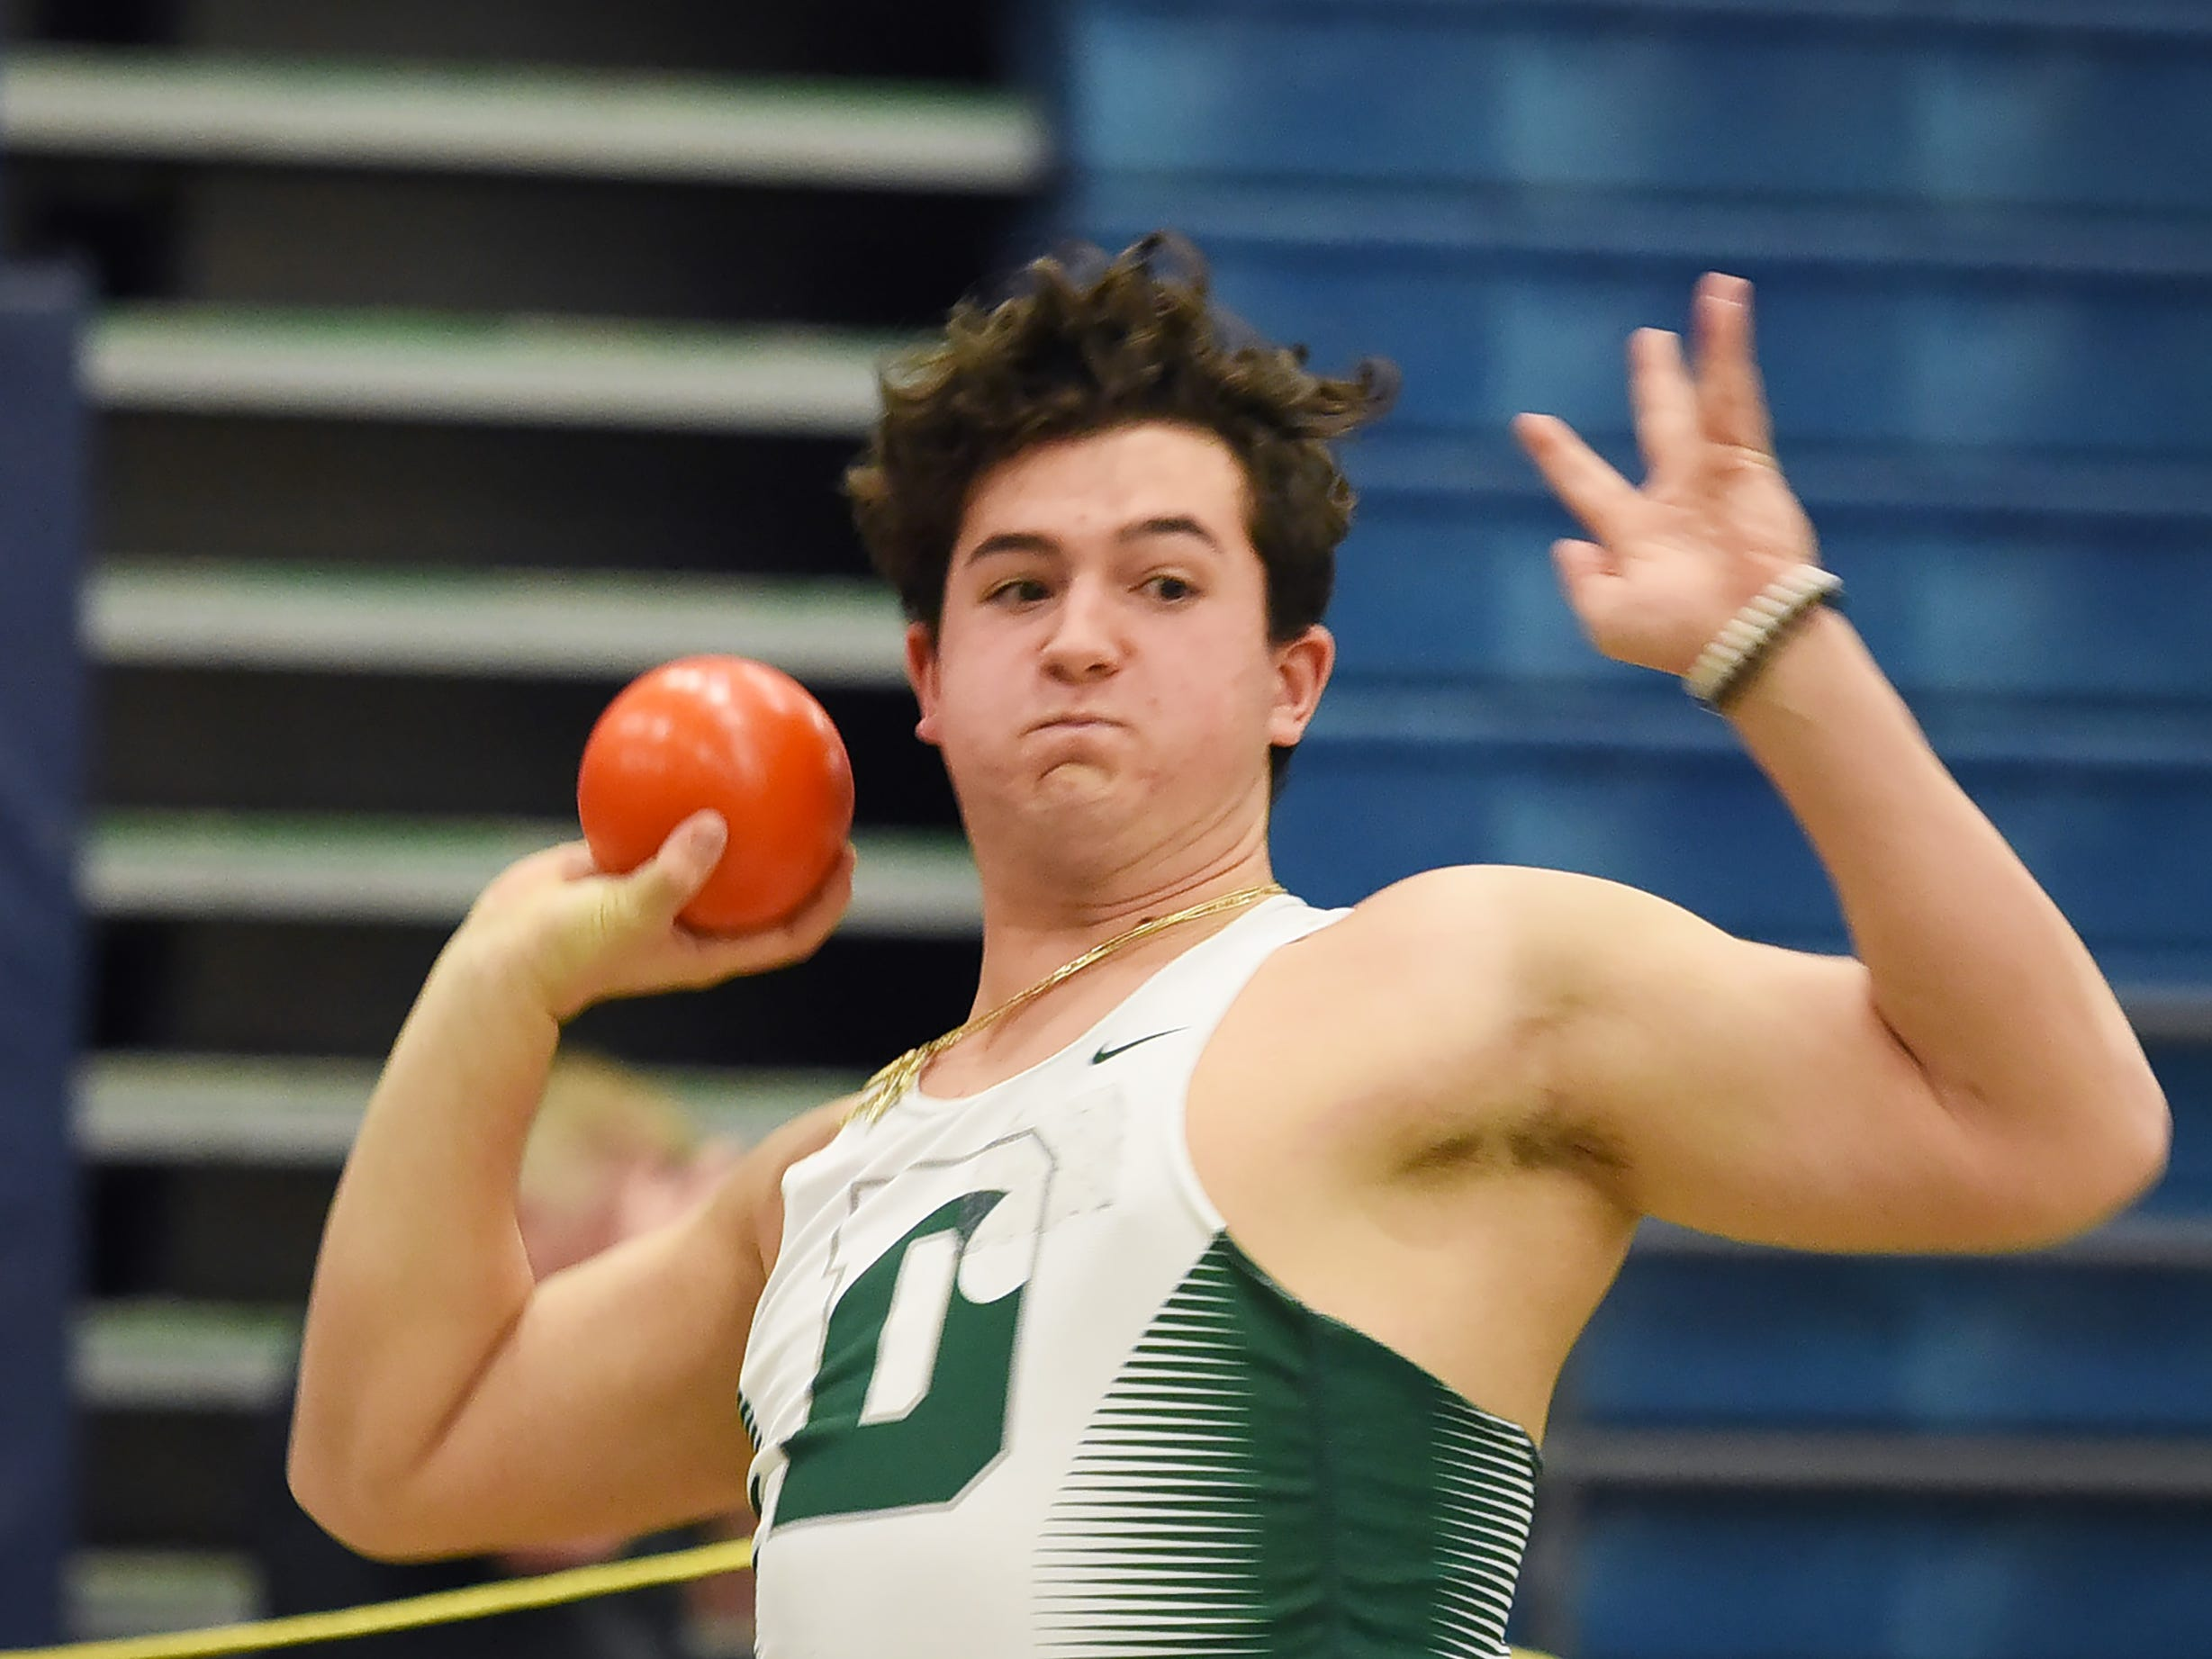 Danny Hajjar of Delbarton prepares to put the shot at Morris County Relays at Drew University in Madison on 01/09/19.